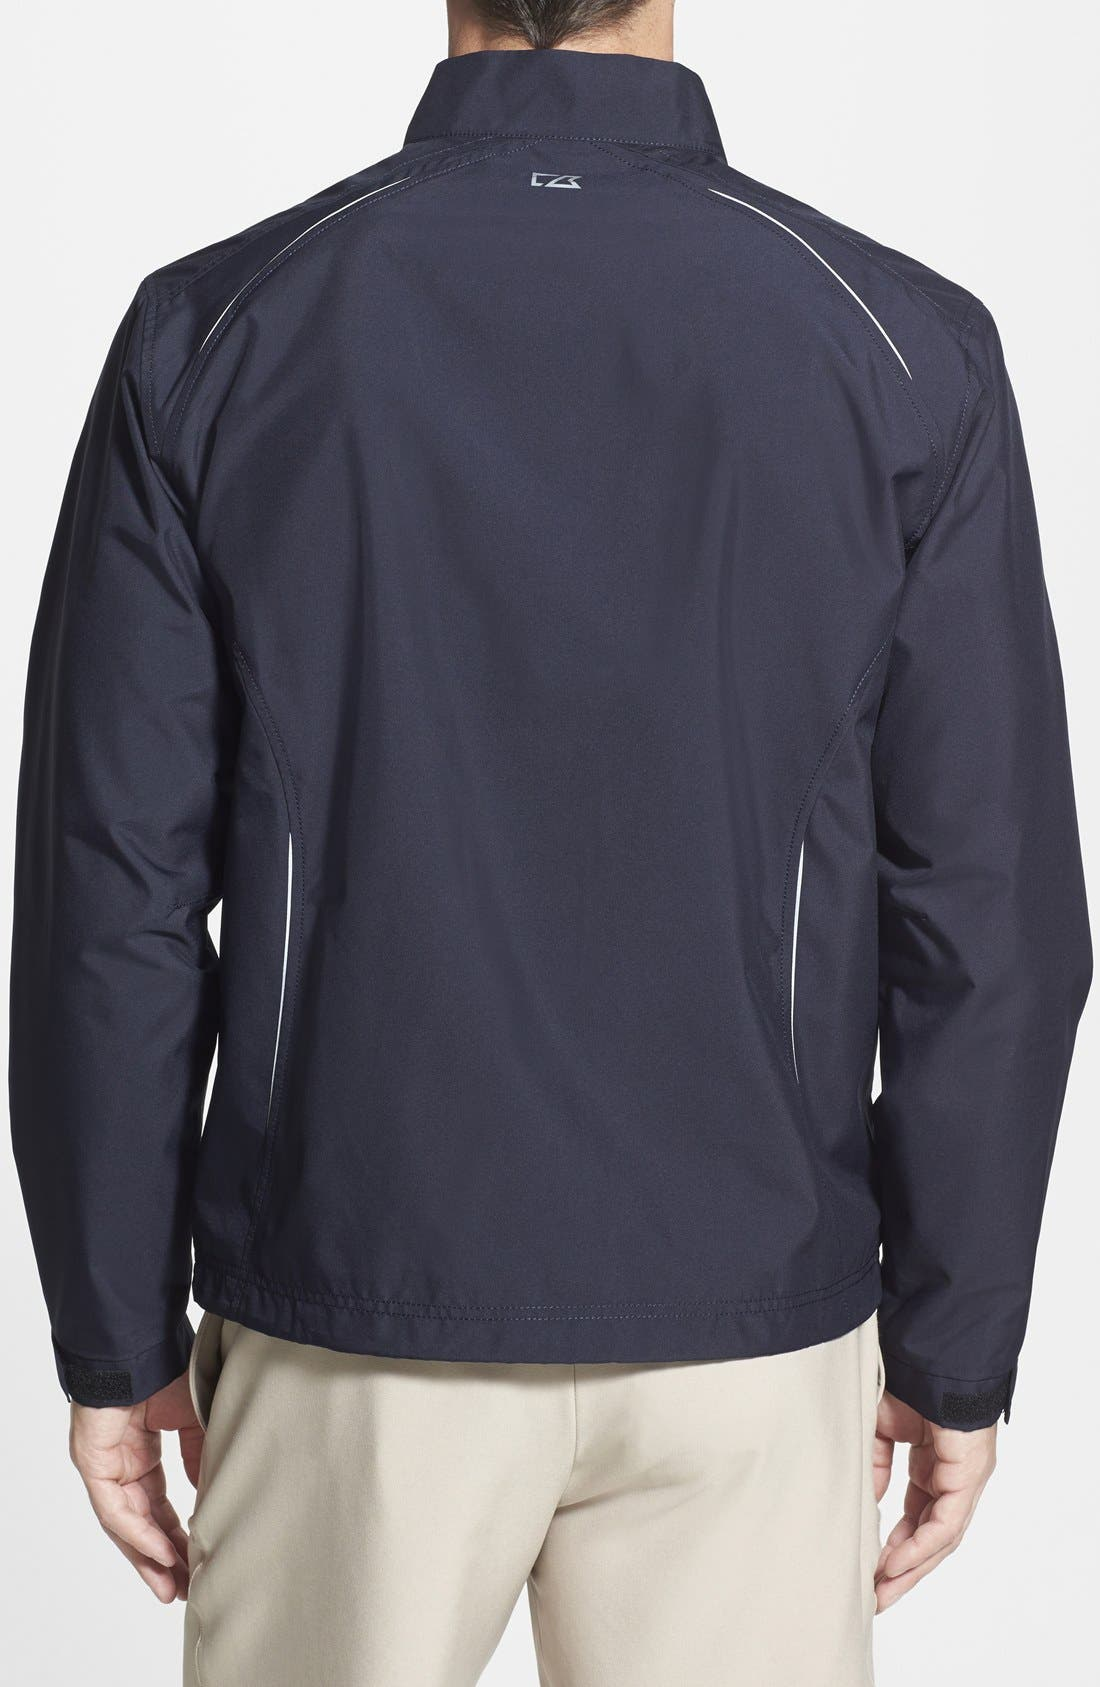 Alternate Image 2  - Cutter & Buck 'Chicago Bears - Beacon' WeatherTec Wind & Water Resistant Jacket